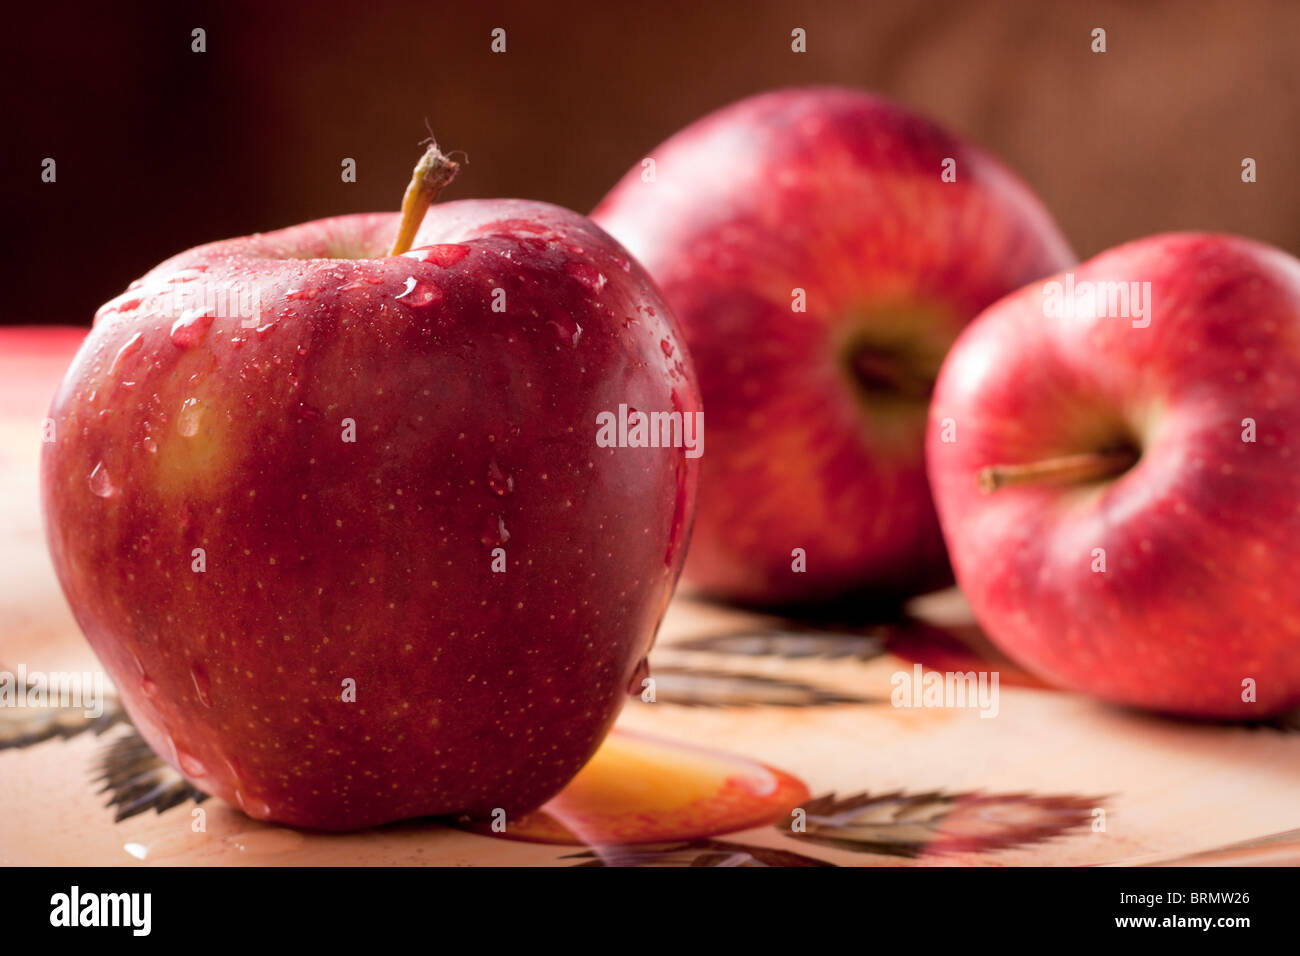 Red Apples - Stock Image